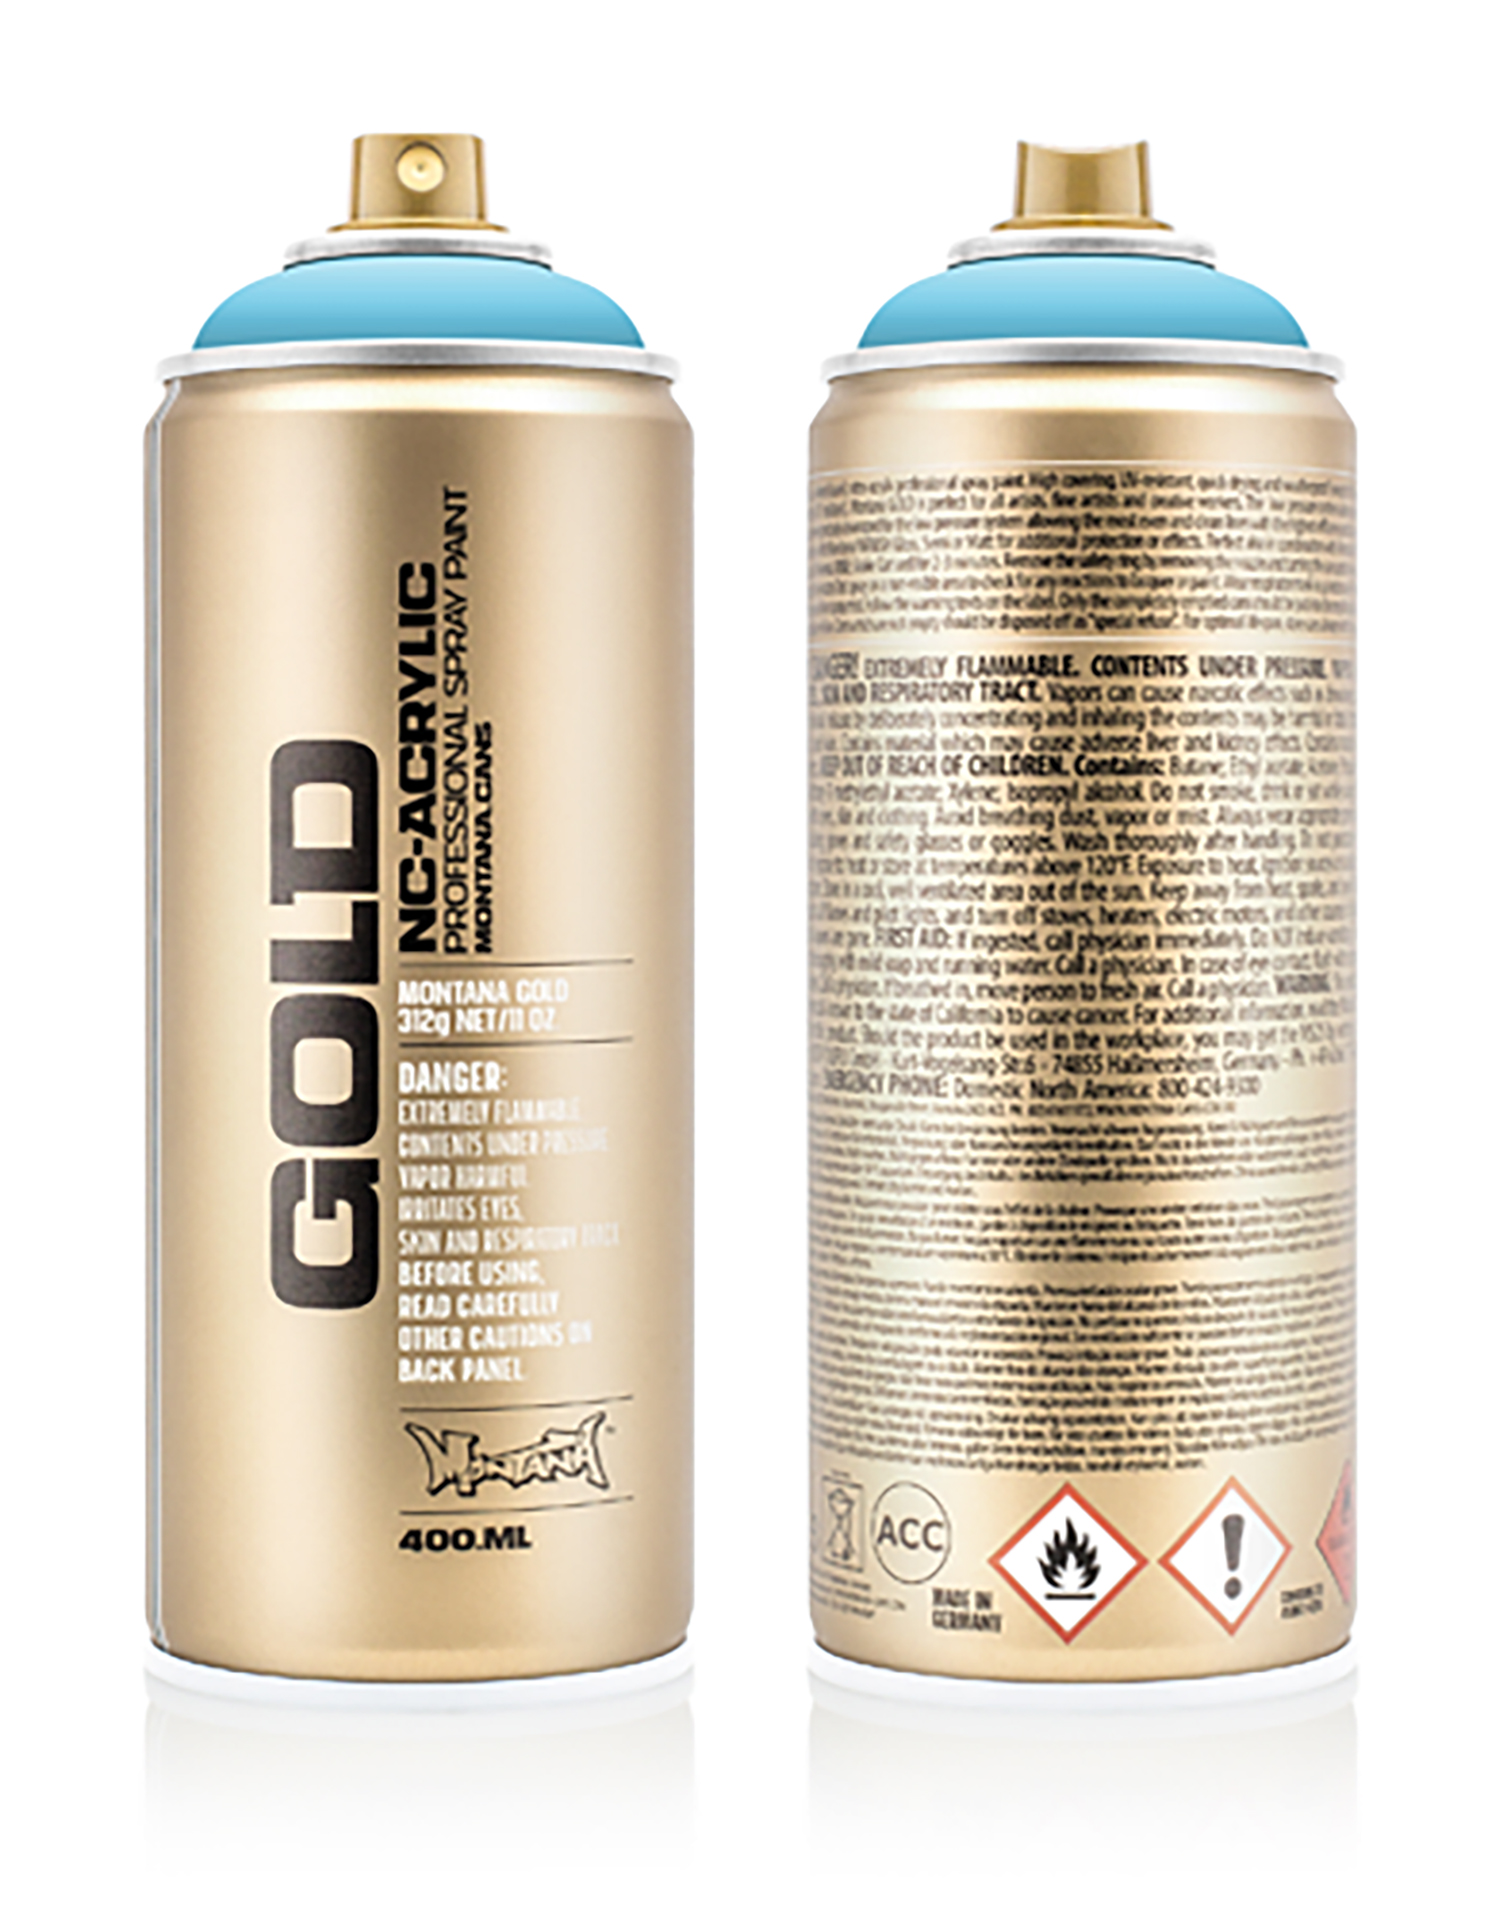 MONTANA-GOLD-SPRAY-400ML-G-5020